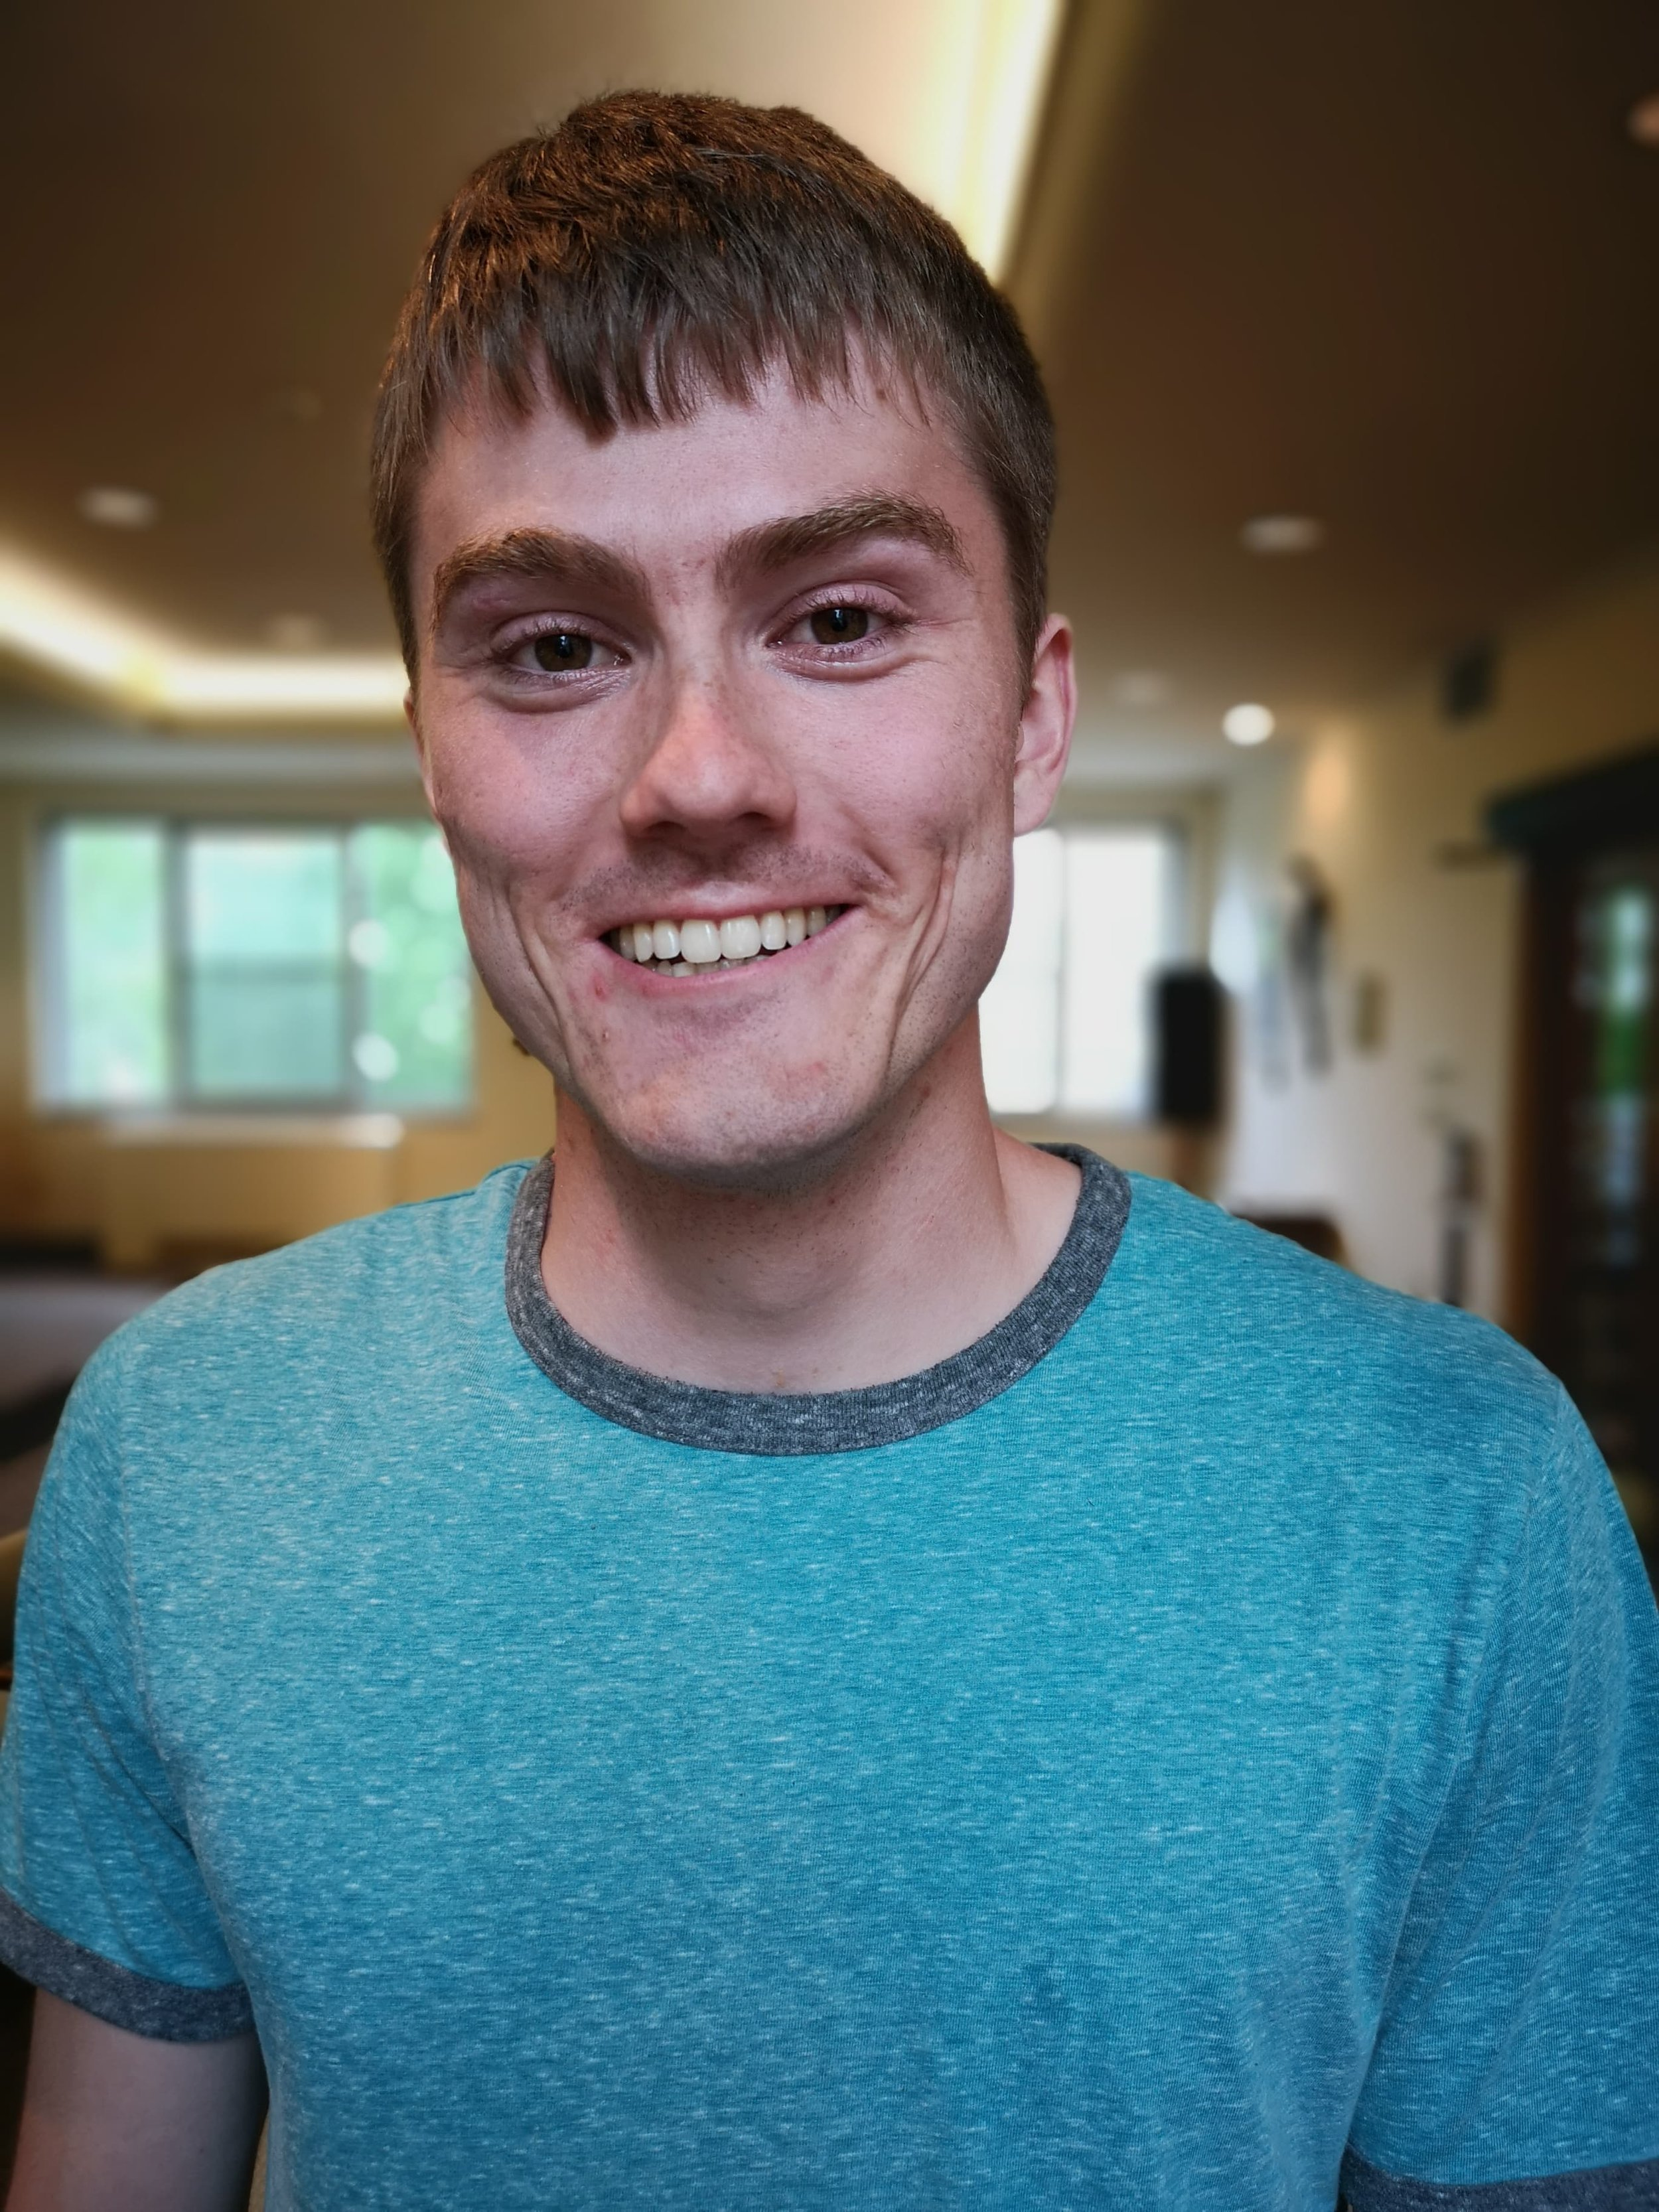 Patrick Lange - Hi! My name is Patrick. I am looking forward to the opportunity to grow in relationship with the people of Wollaston and coming to know and understand myself deeper!